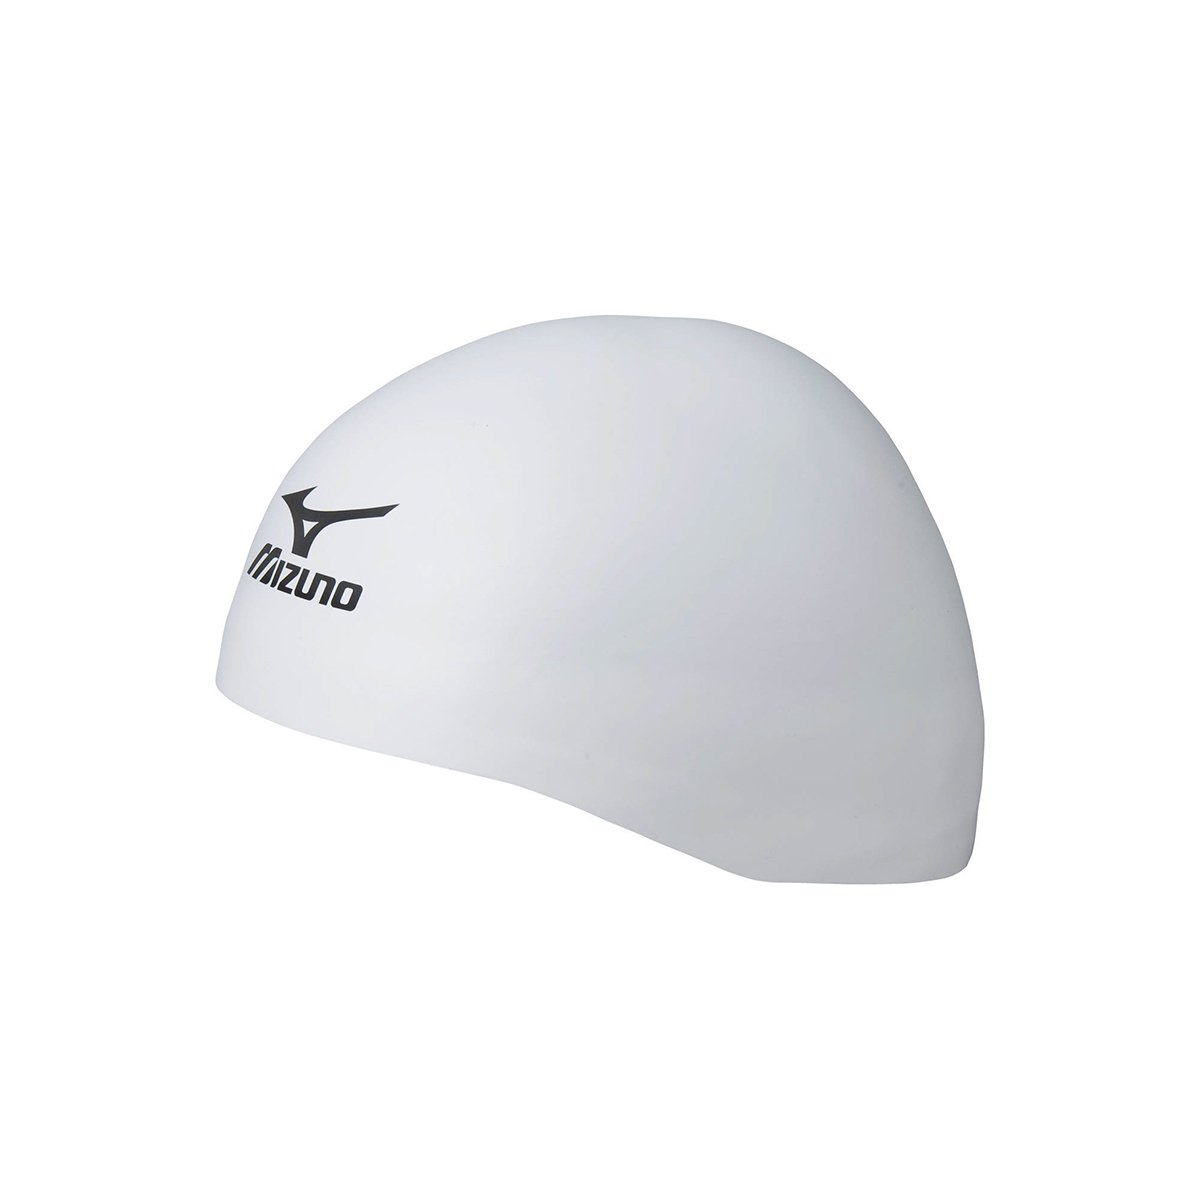 GX-SONIC HEAD PLUS - SWIM CAP FOR RACE White